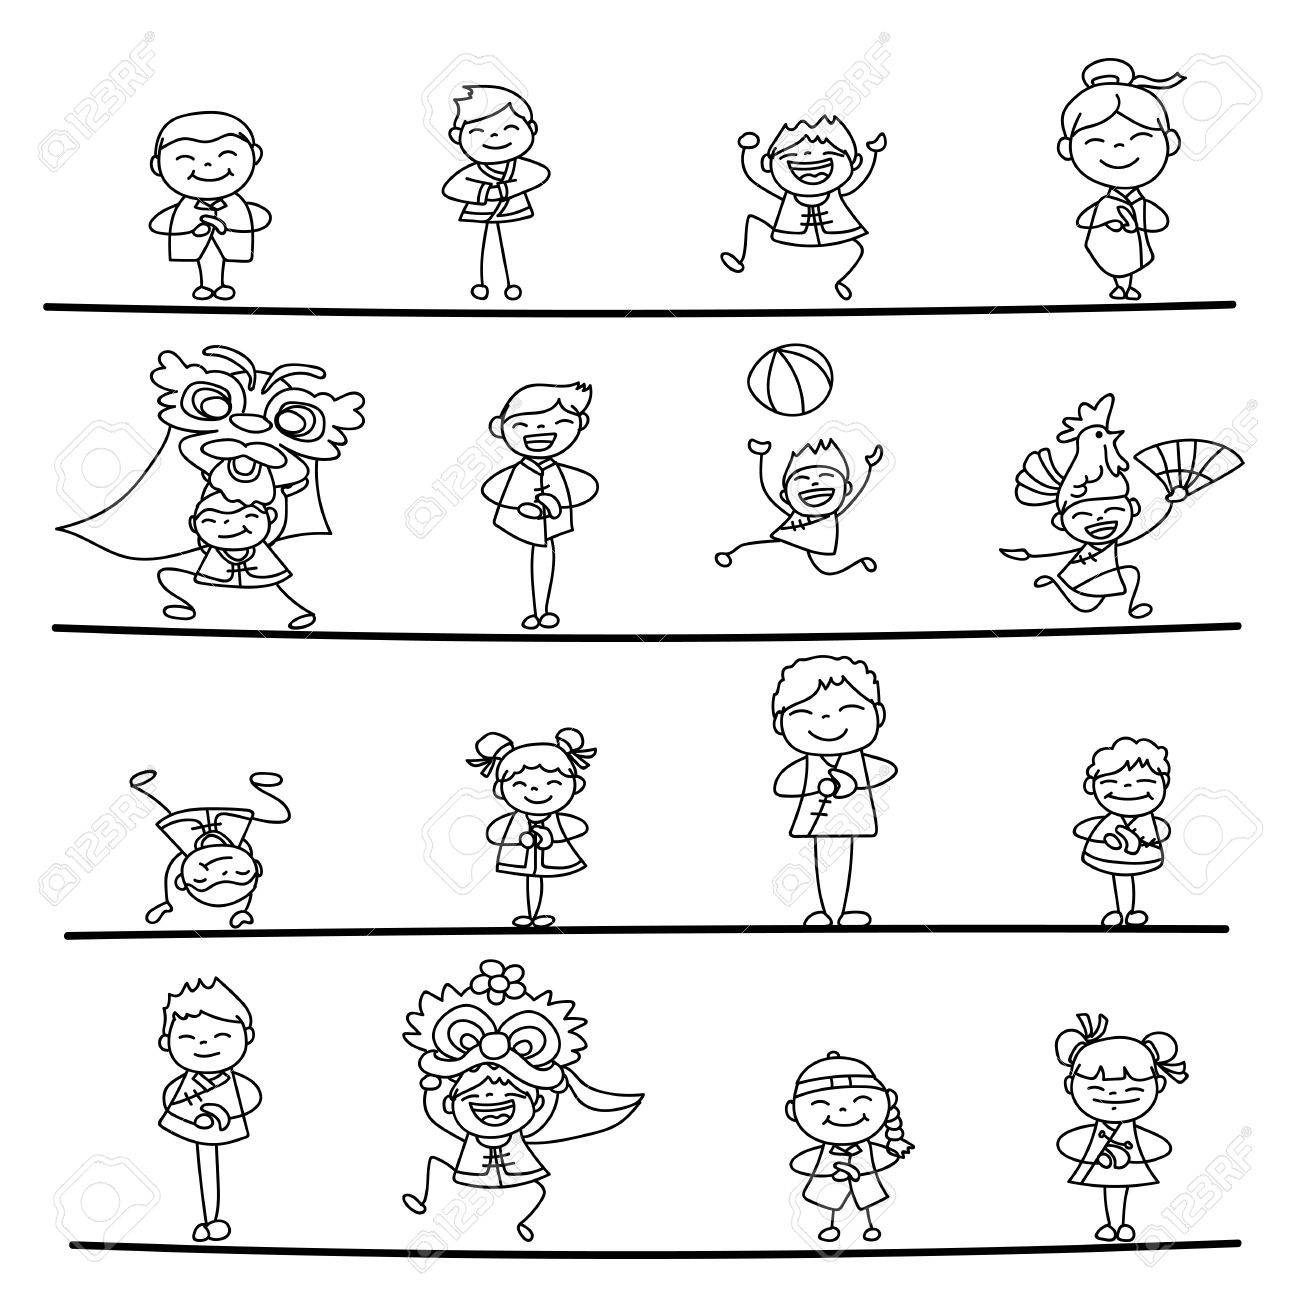 Set Of Hand Drawing Cartoon Character Chinese People And Kids Happy New Year